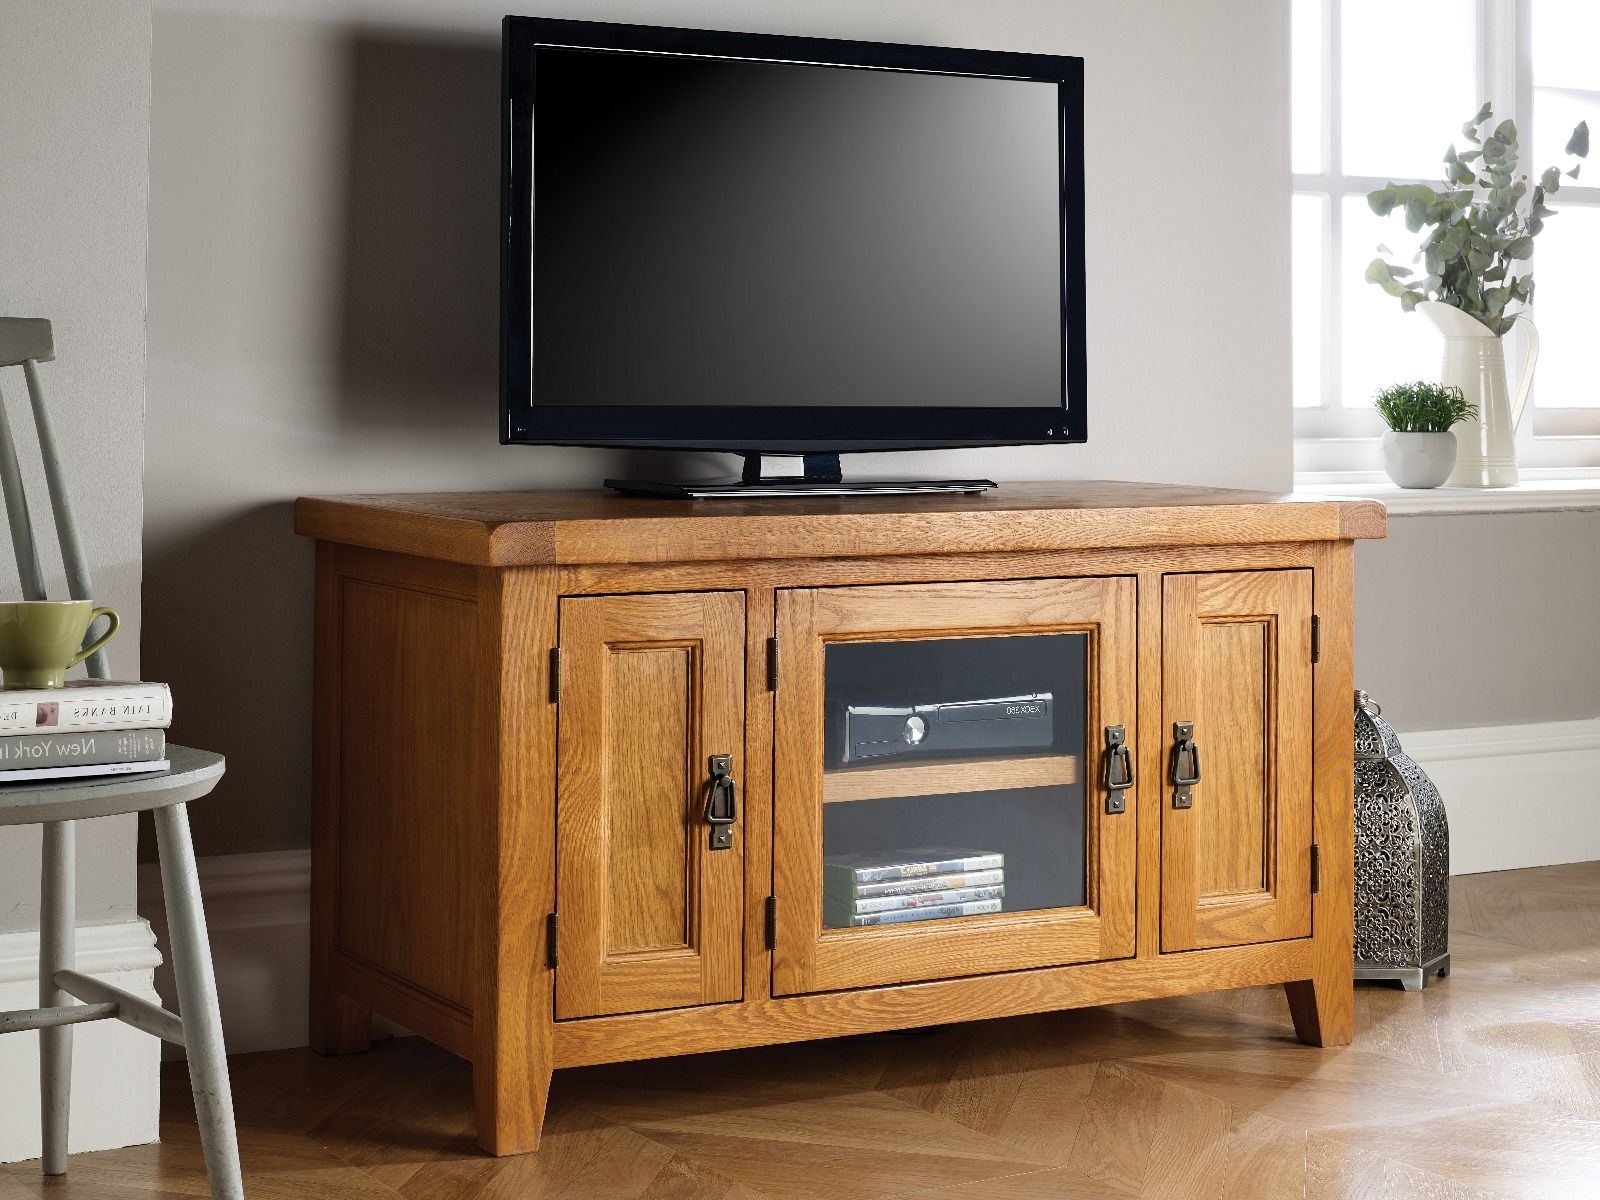 Well Known Country Oak Tv Unit With Glass Front For Glass Fronted Tv Cabinet (View 20 of 20)